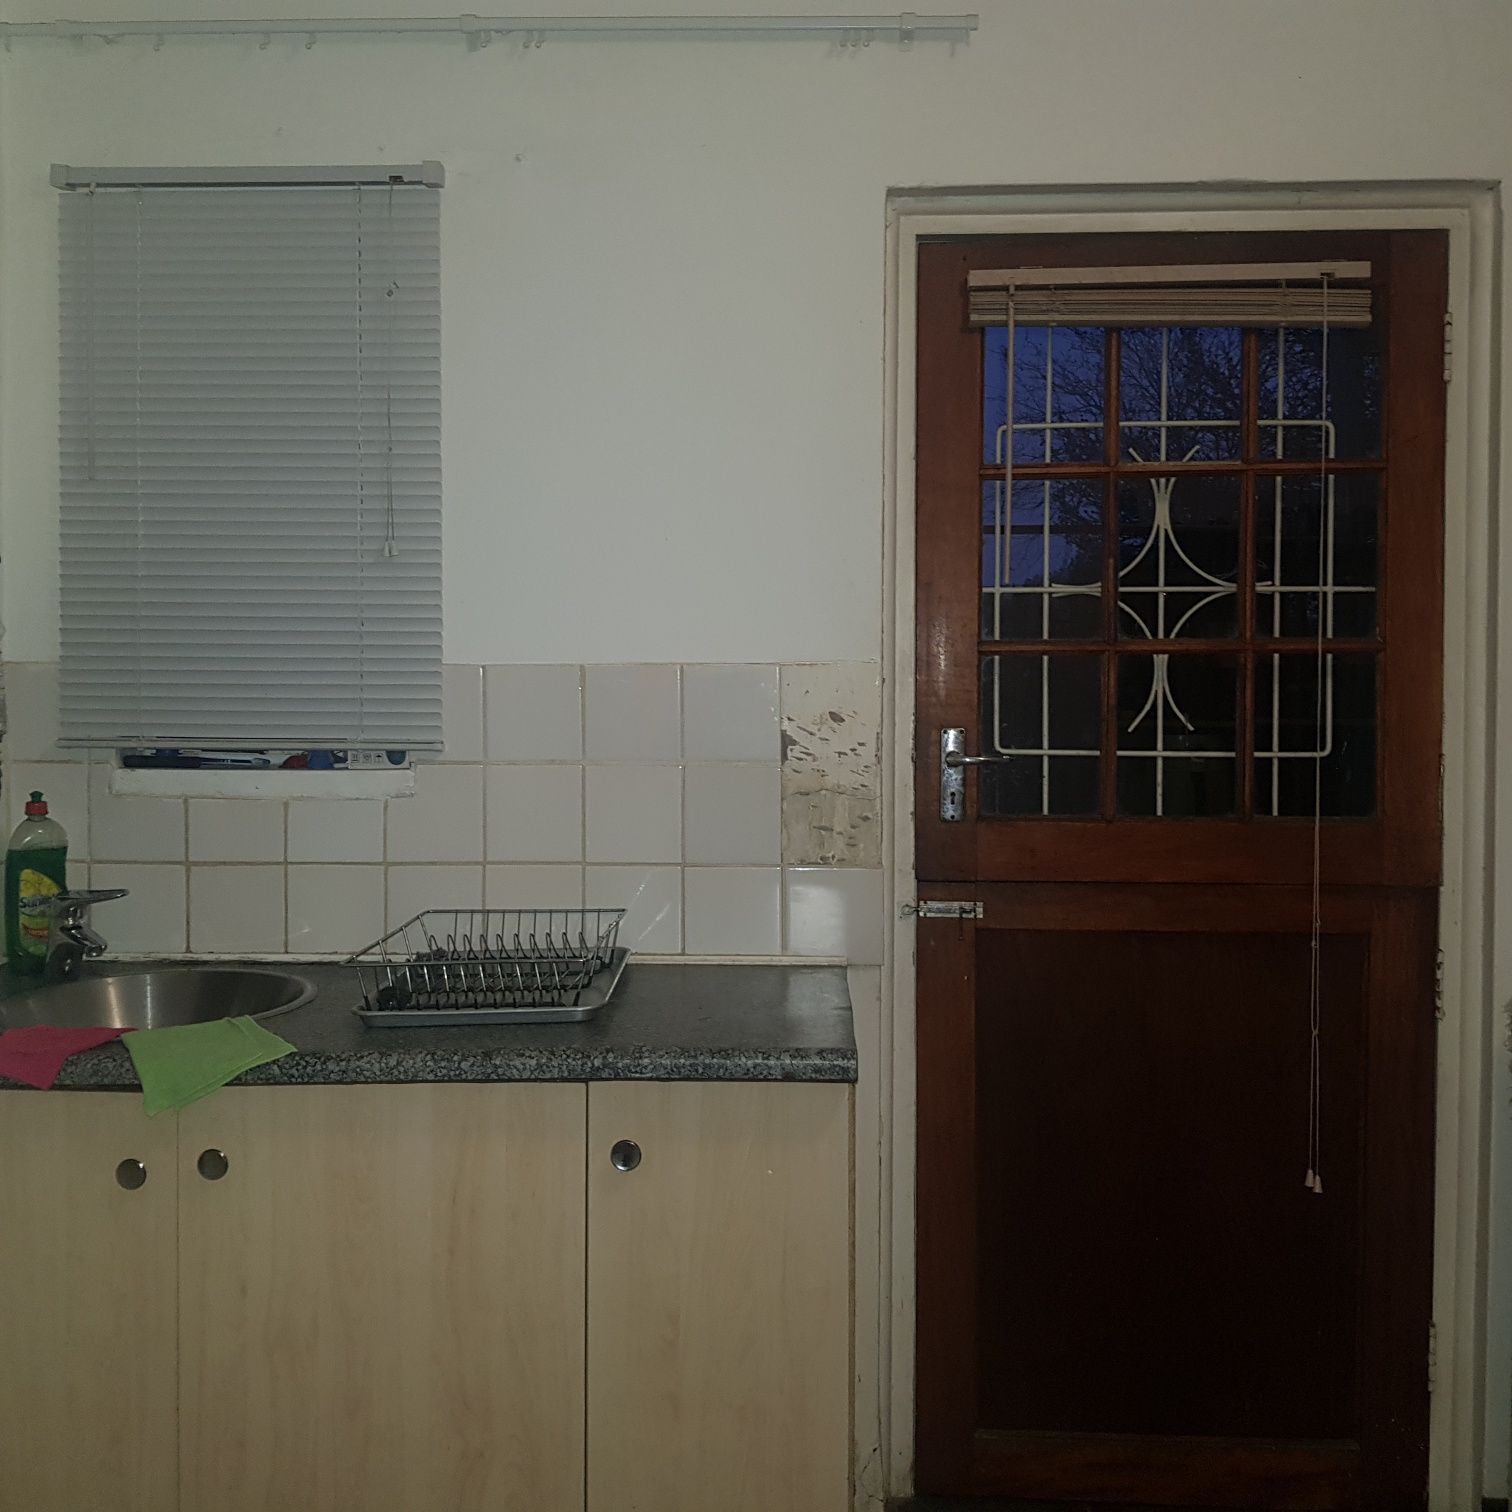 Affordable 3 Bedroom Cottage - Generaal de Wet - FOR RENT - R5000pm water included & Pre-paid electr